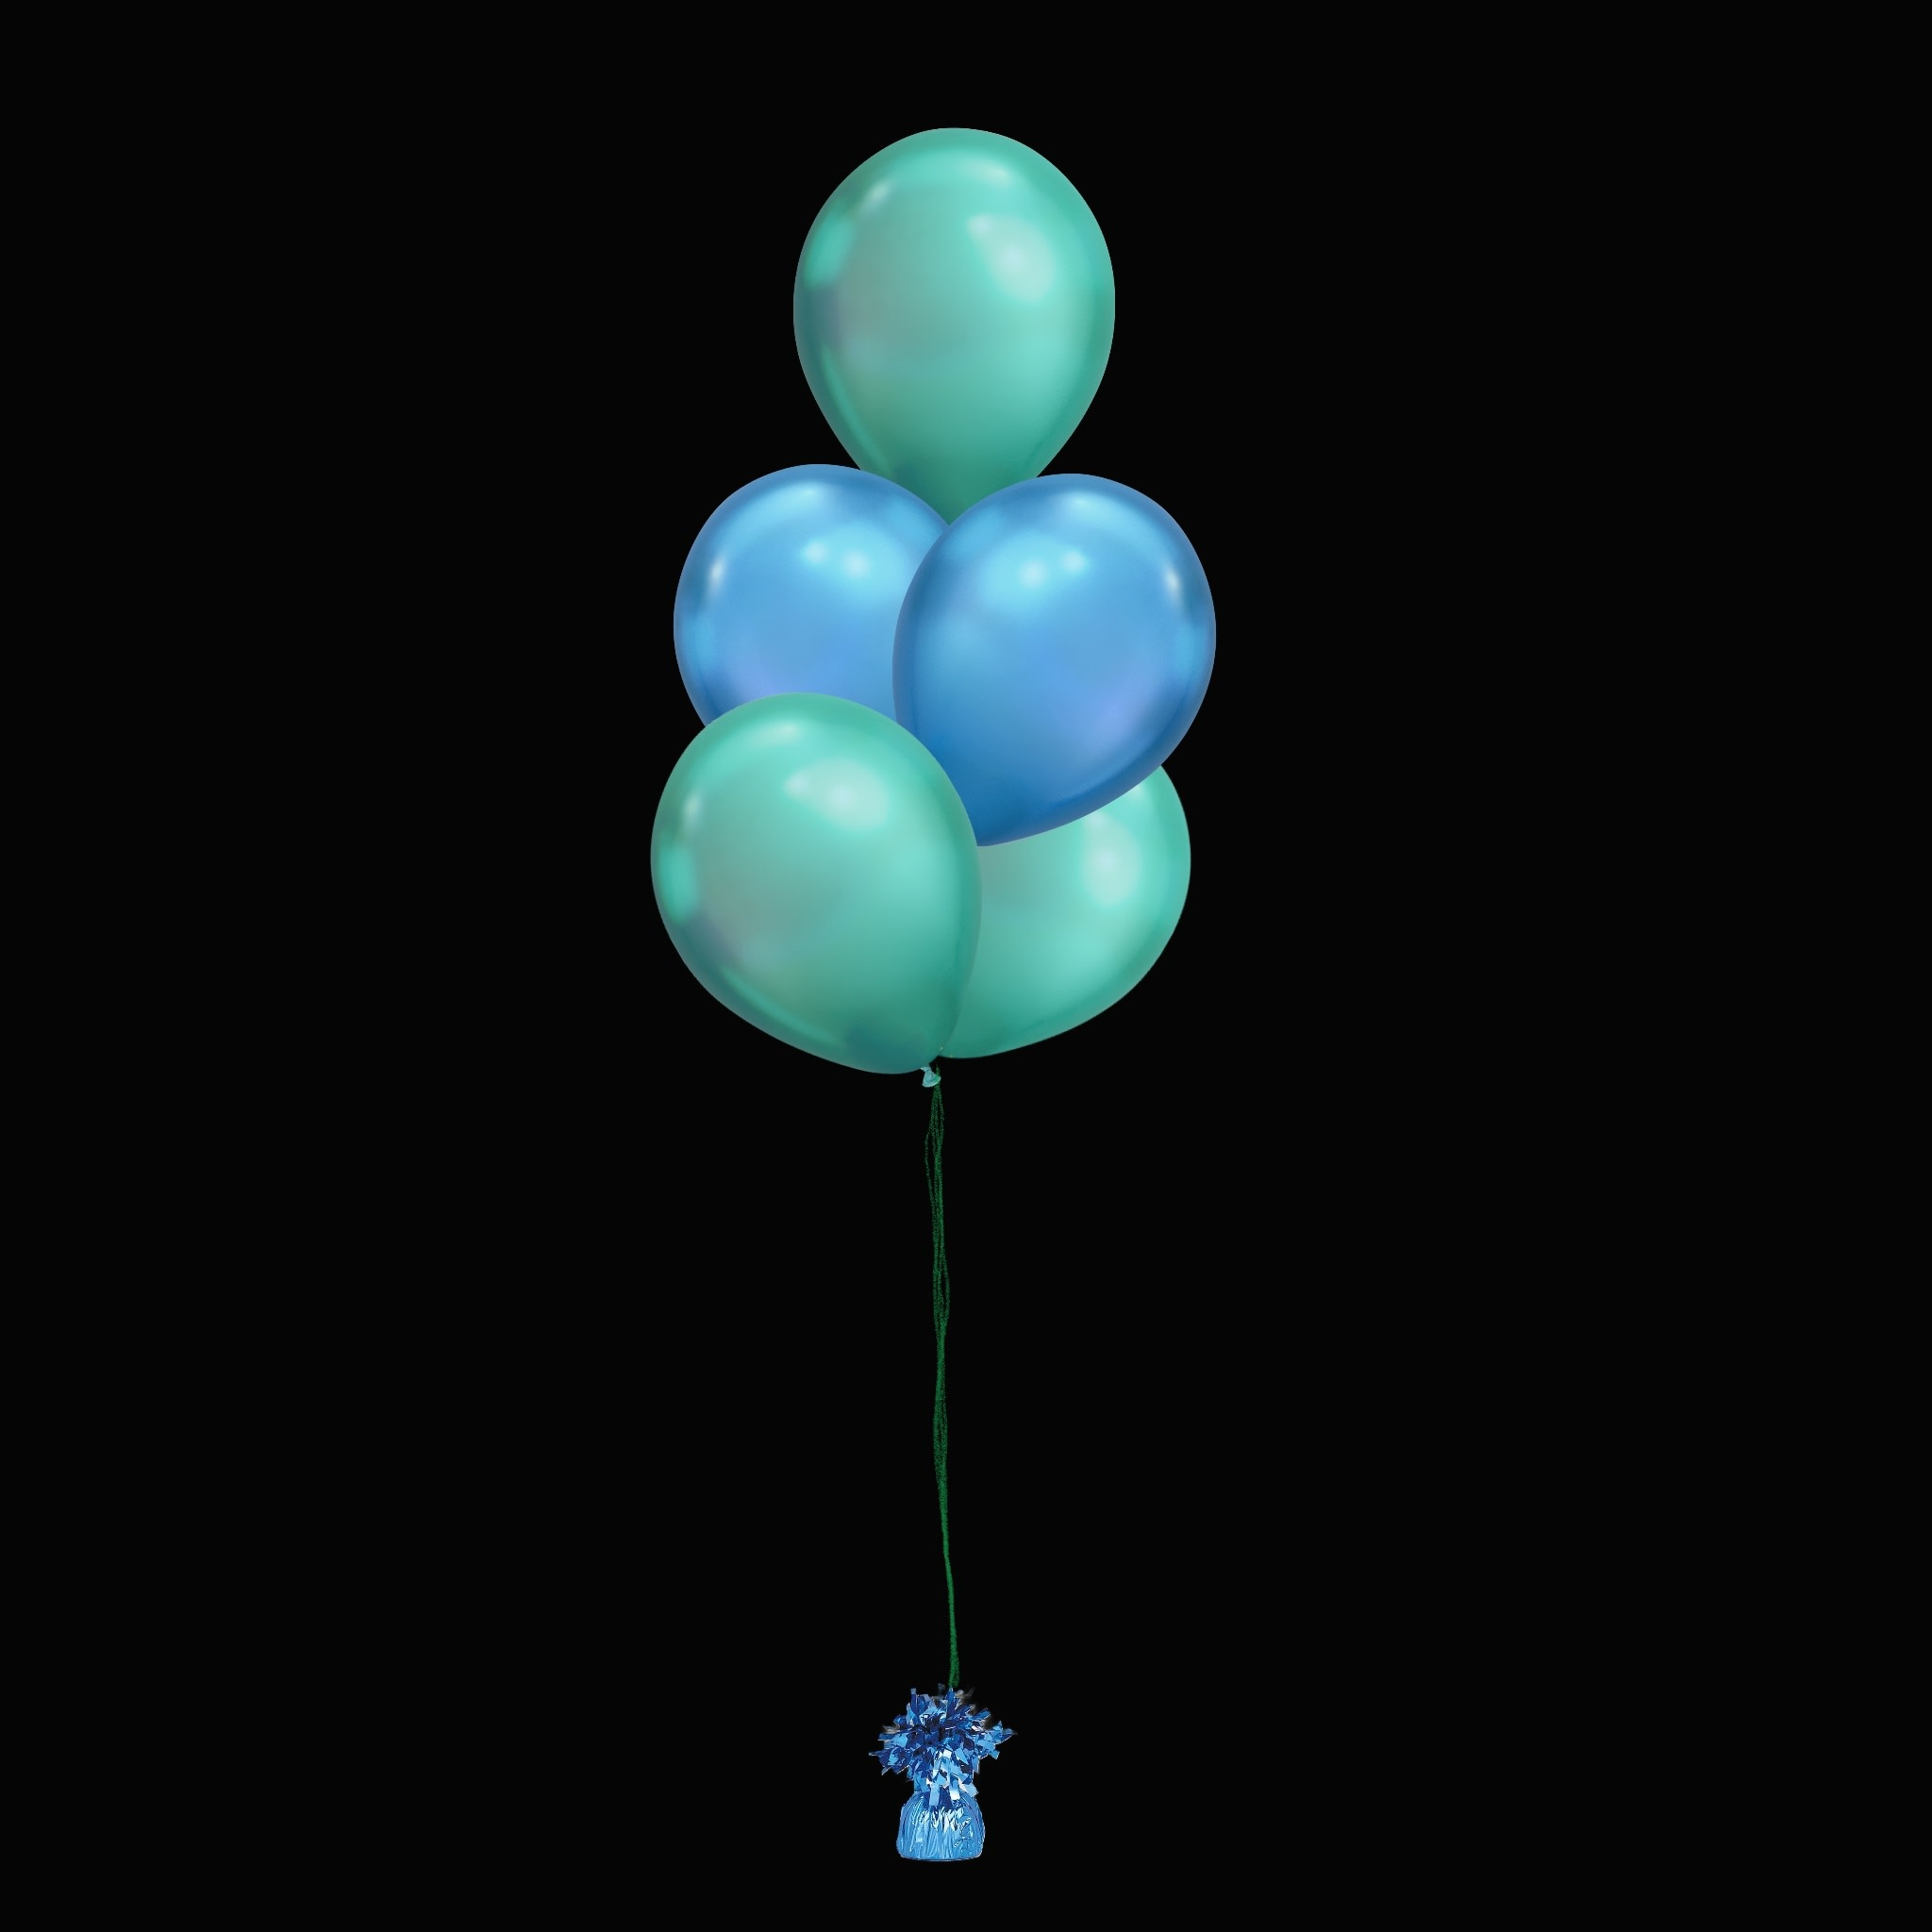 5 Balloons to a Weight Not-Treated